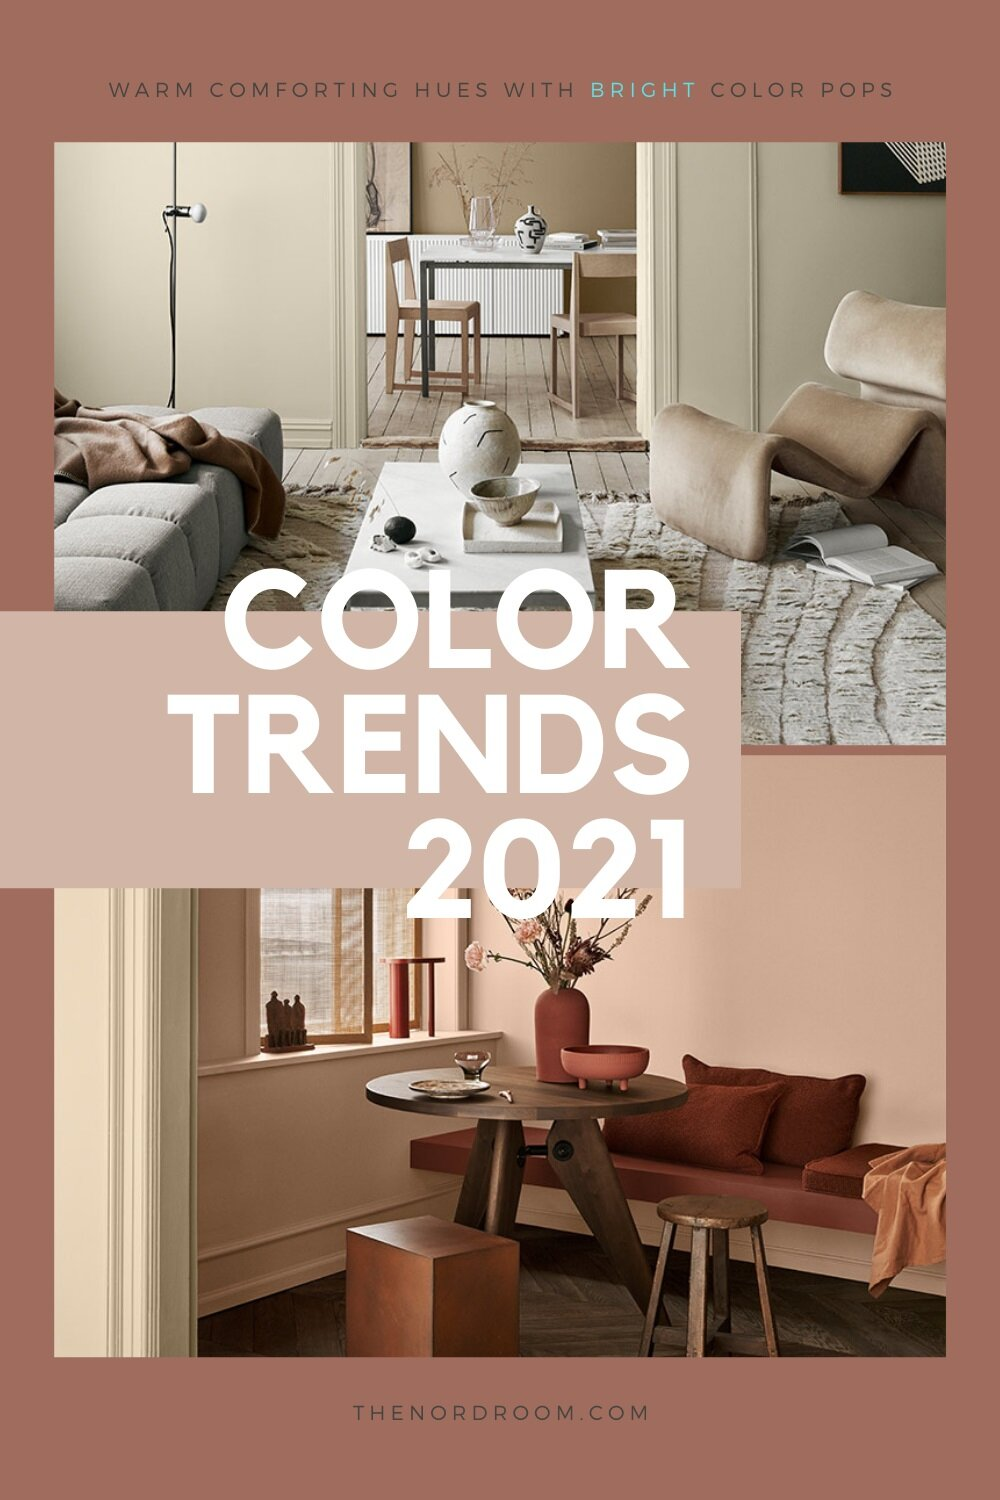 The Color Trends For 2021: Warm Comforting Hues And Bright Color Pops